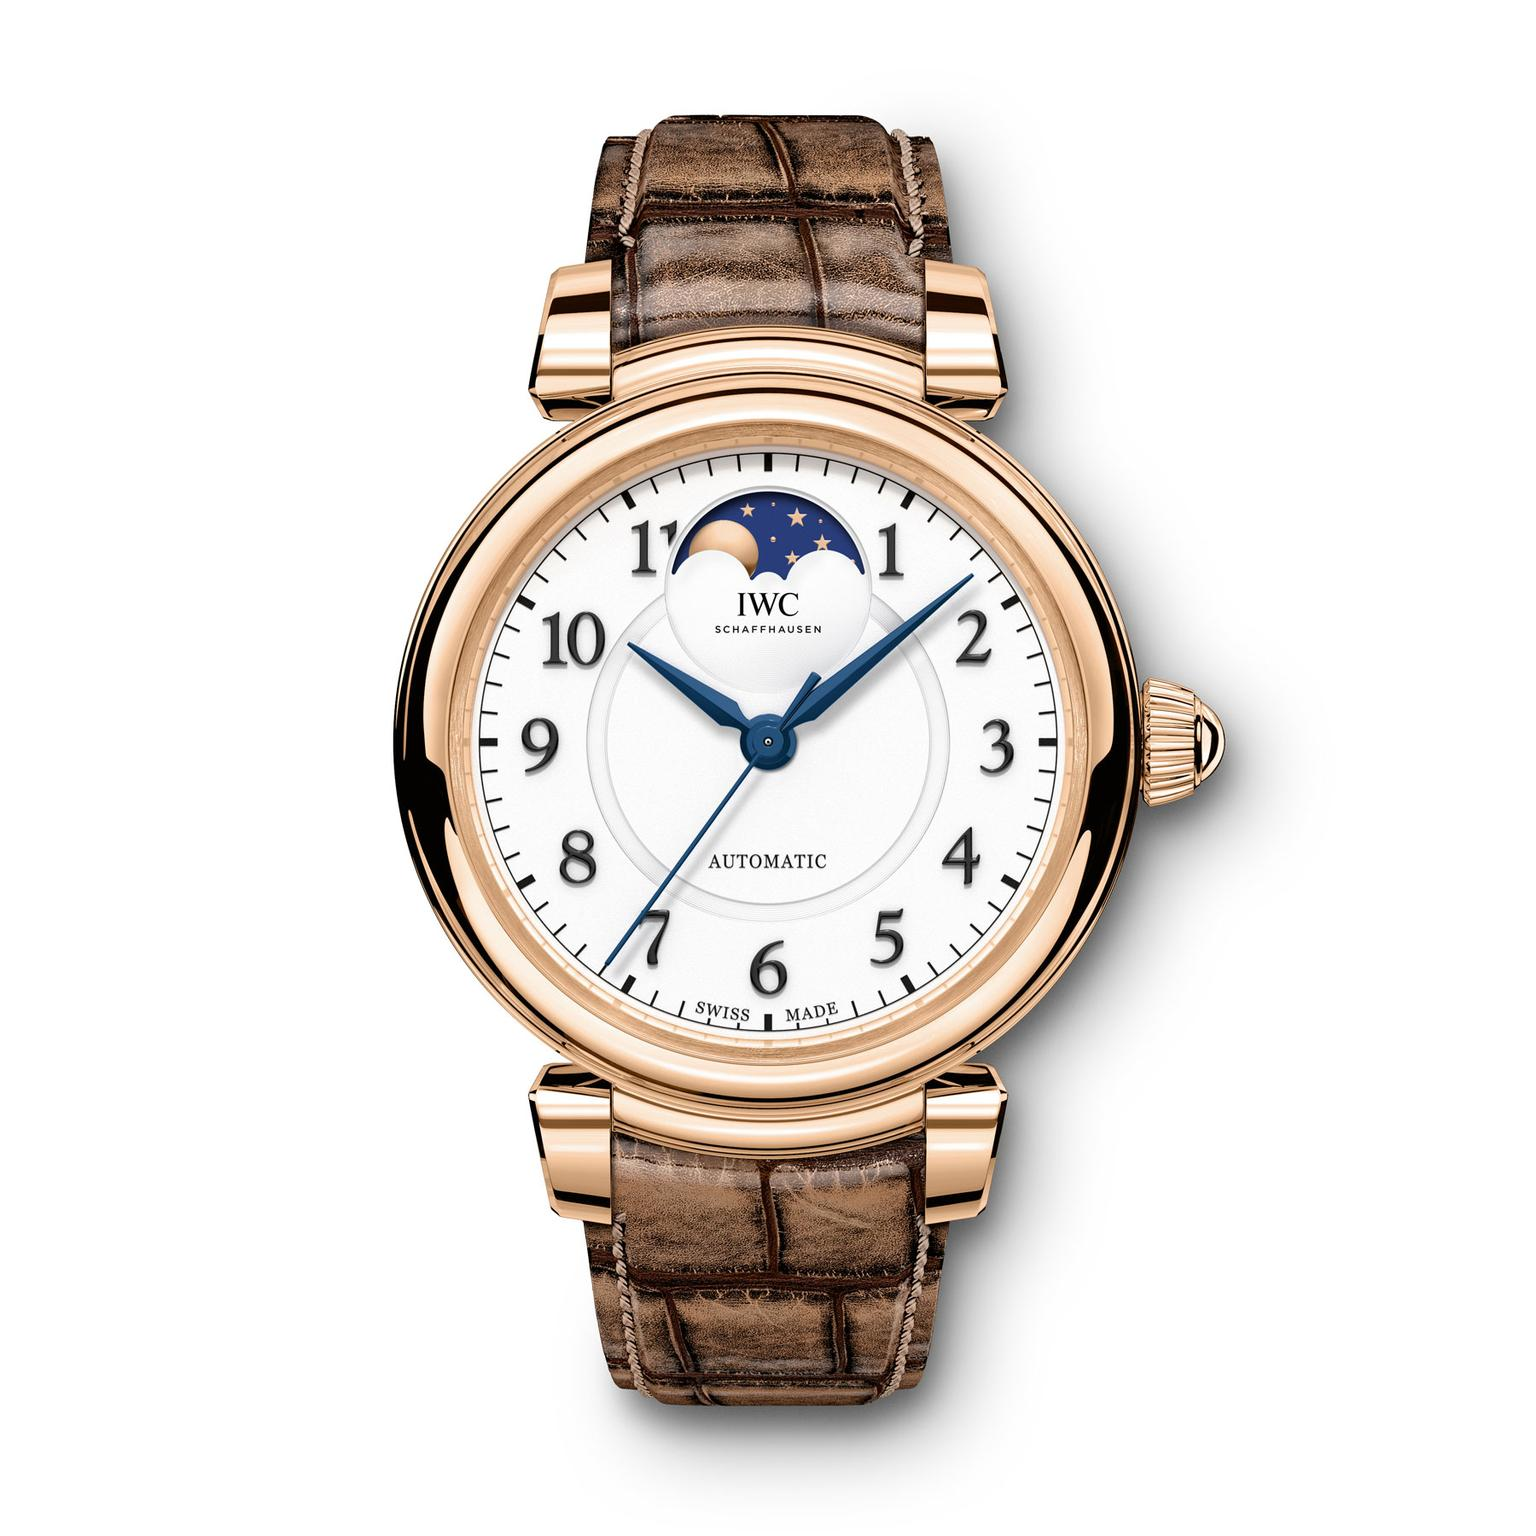 IWC Da Vinci Moon phase red gold watch for women